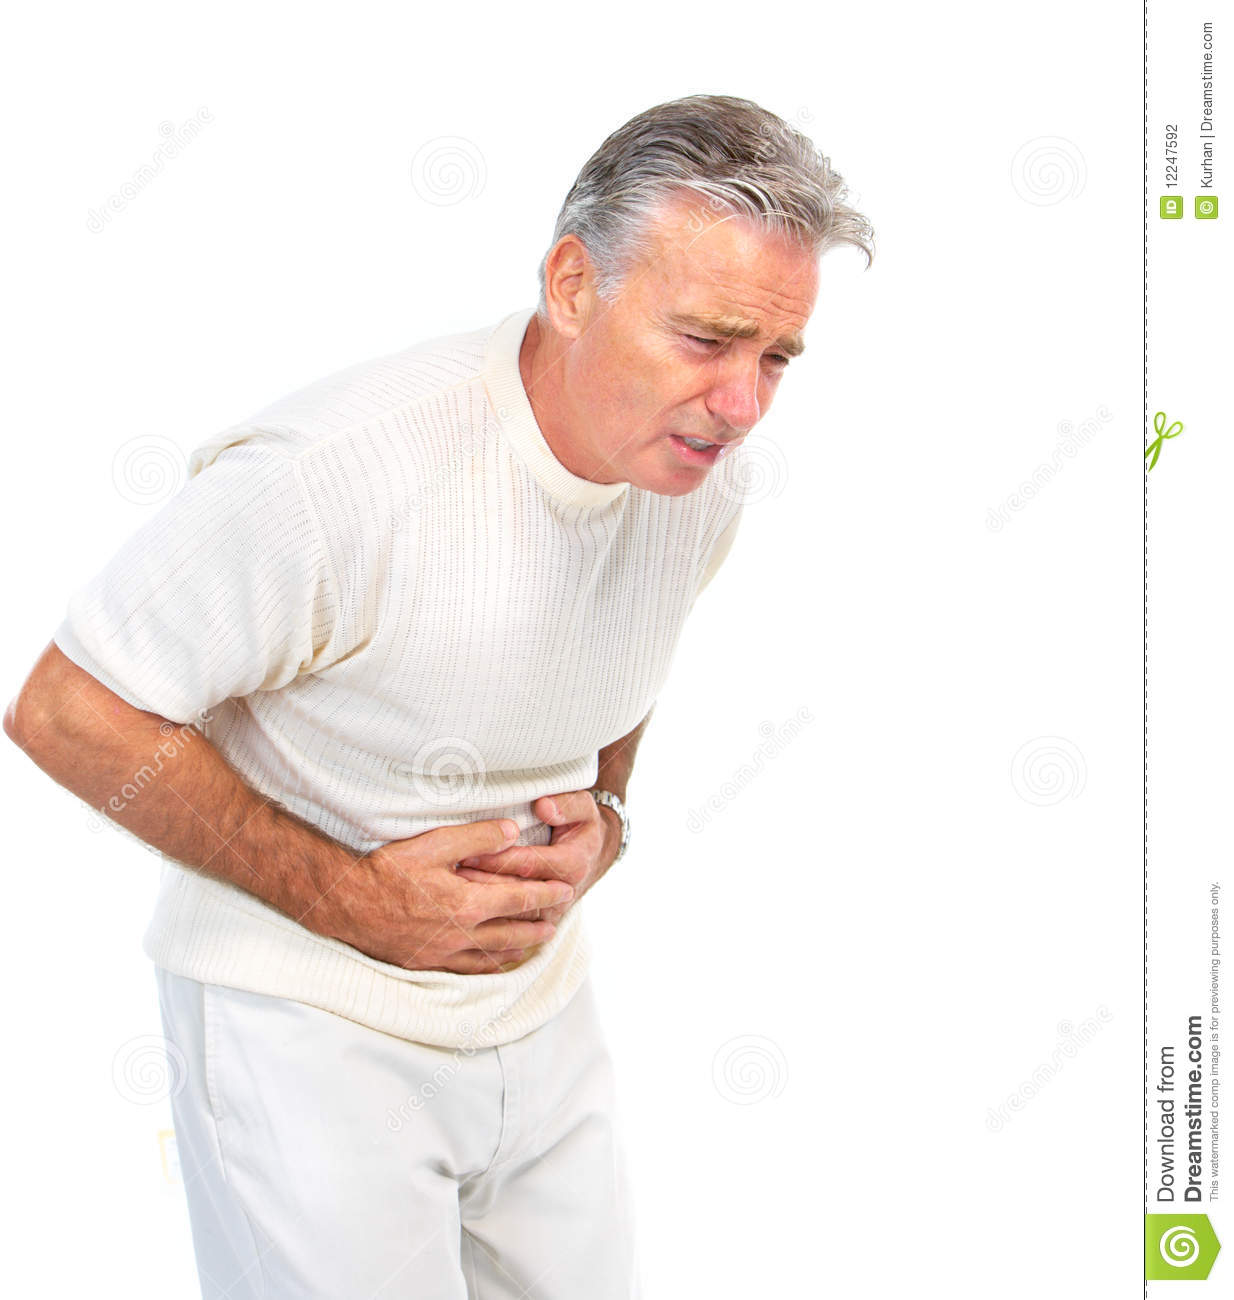 Stomach Pain When Eating Food